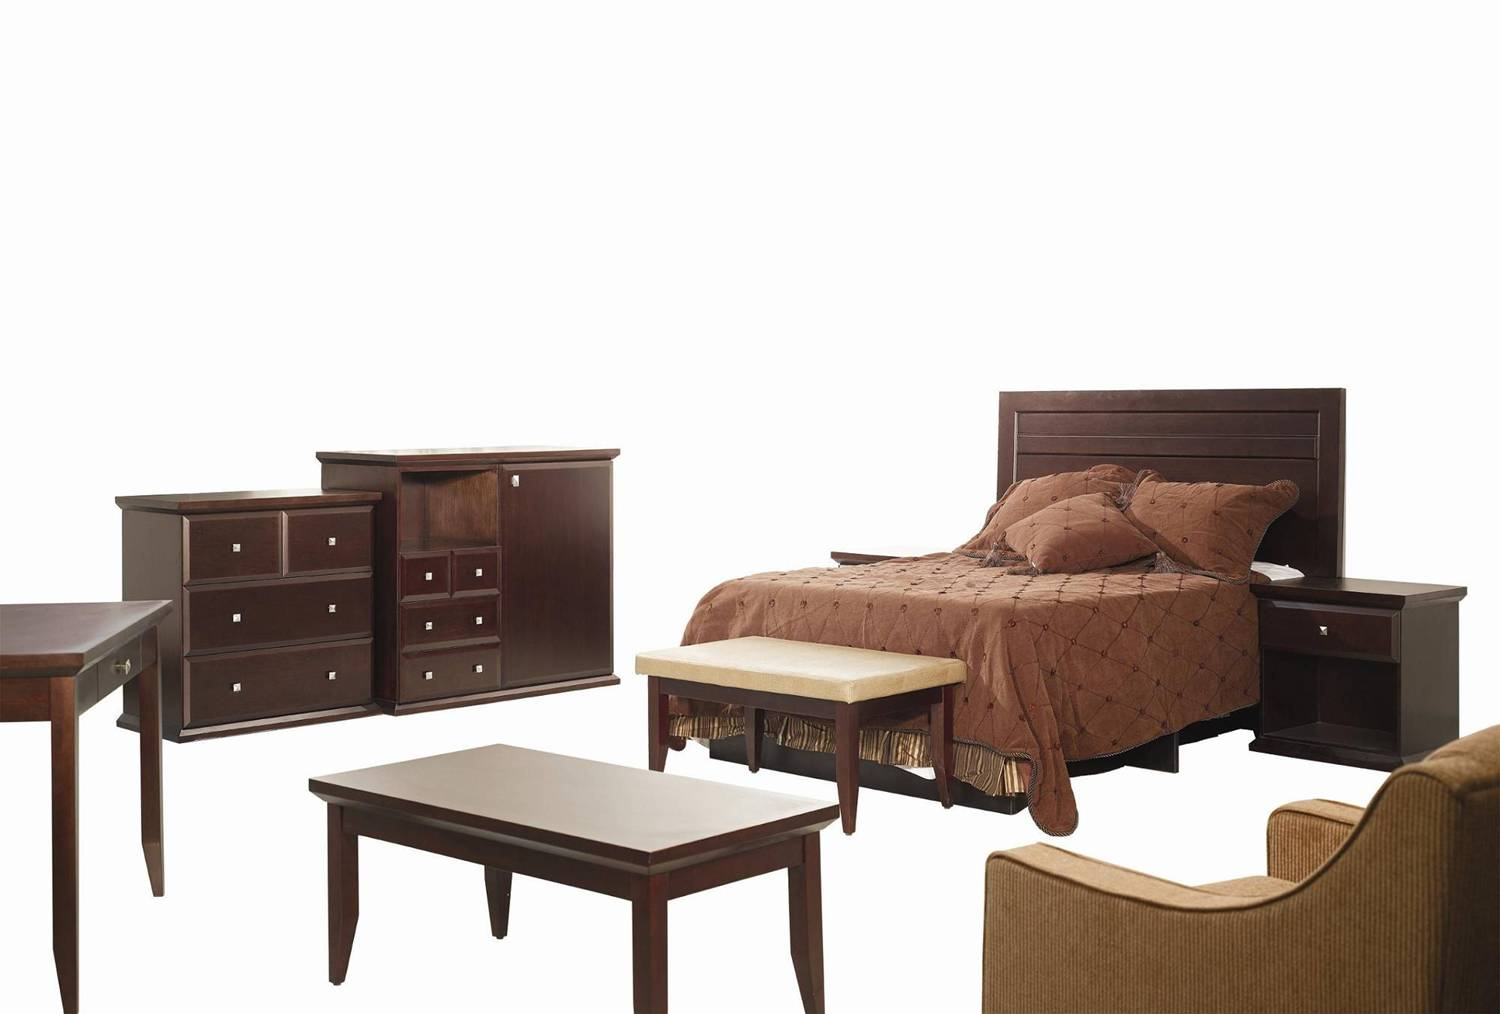 Ways To Select The Highly Reputed Hotel Furniture Manufacturers Hotel Furniture Furnishings